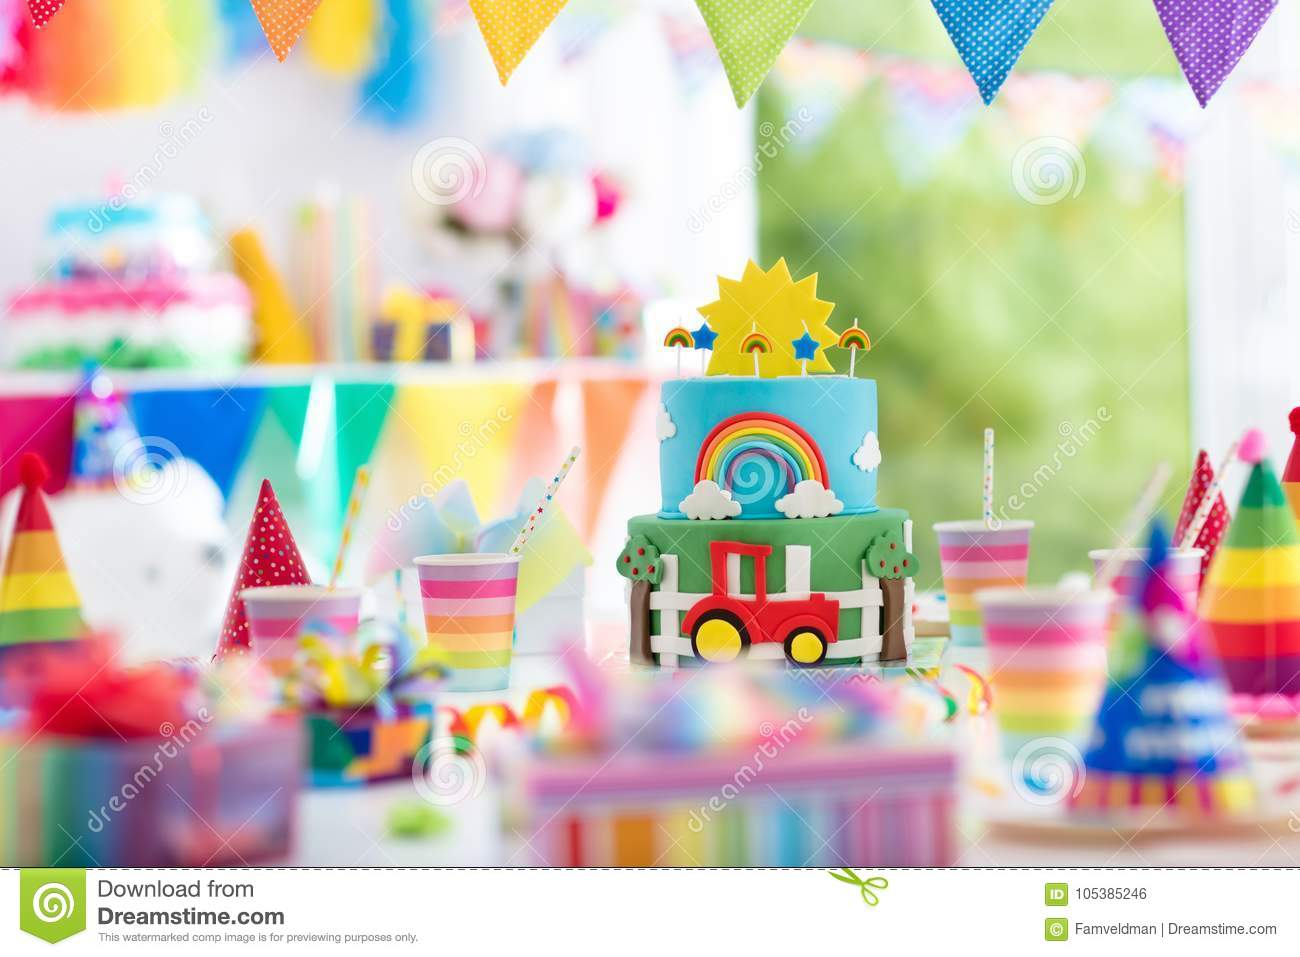 Boy Birthday  Cake For Little Child  Kids Party  Stock Photo - Image